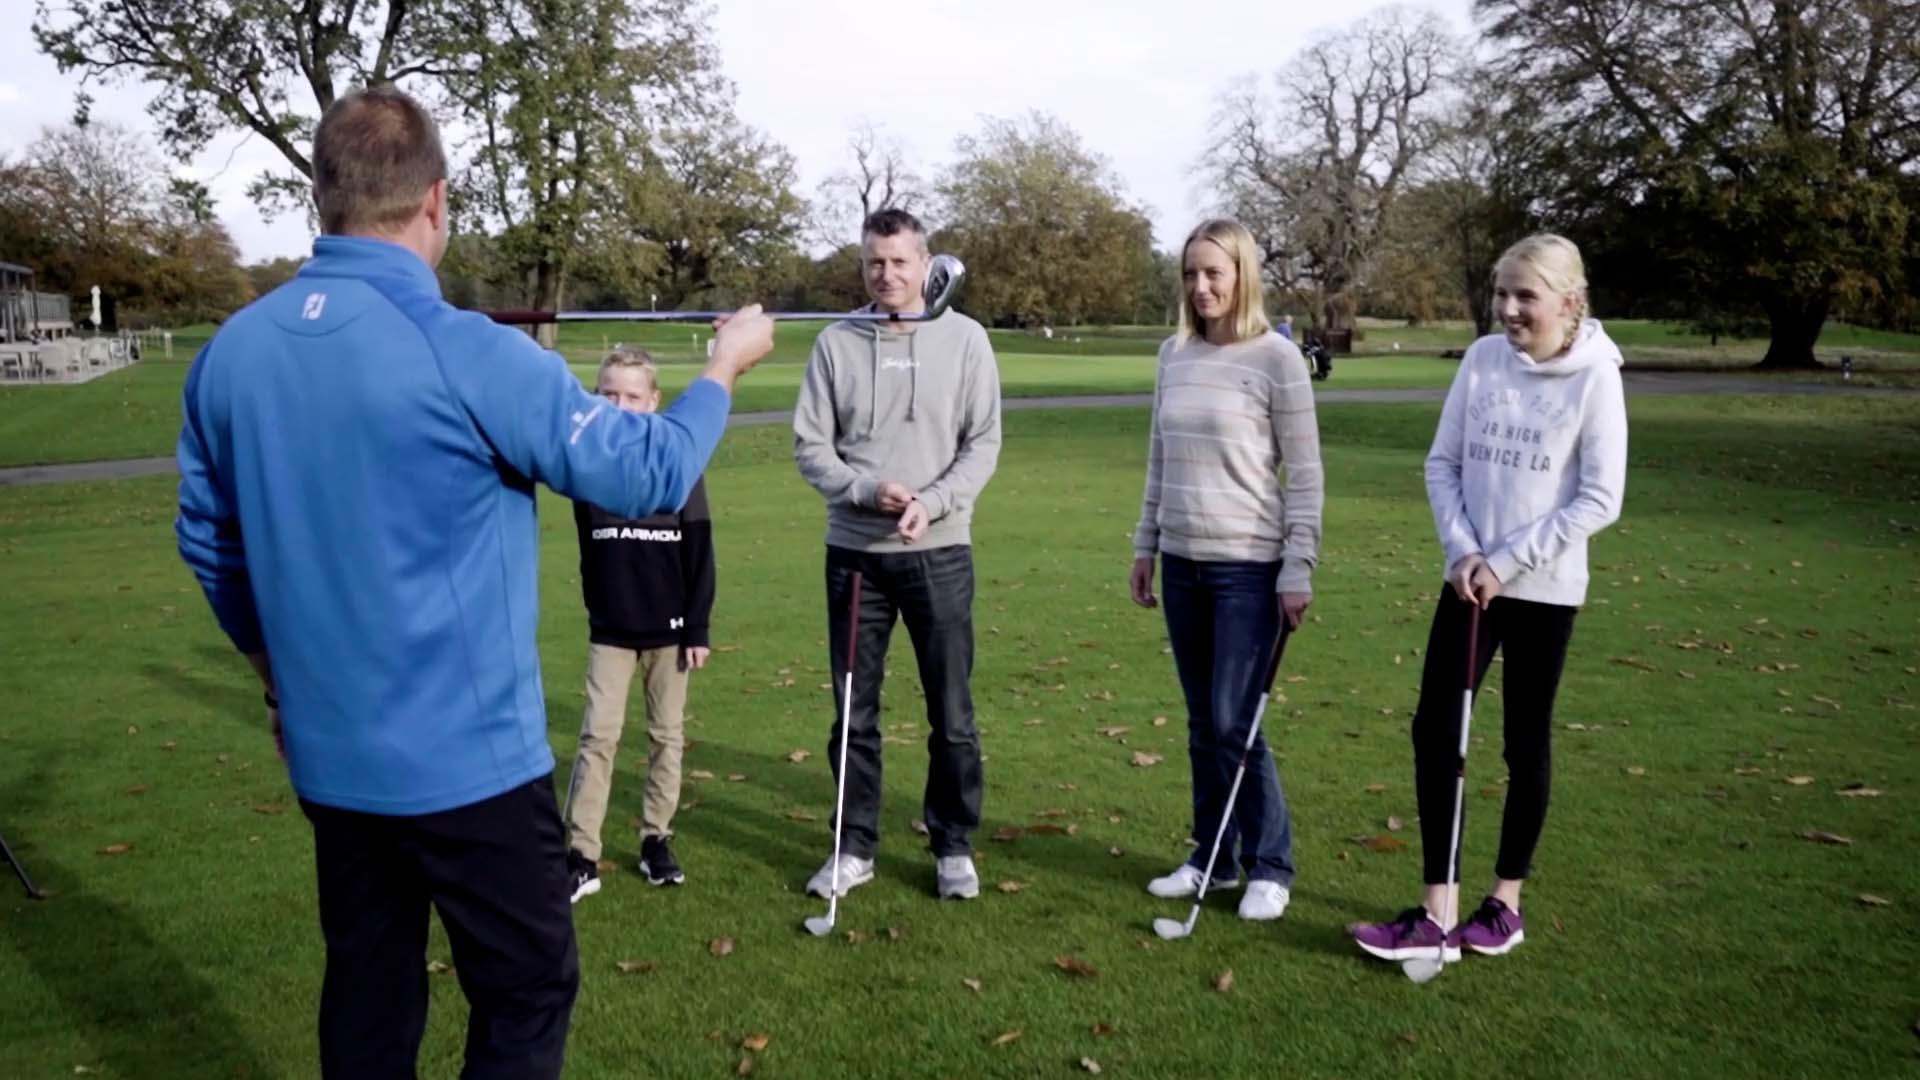 Get into golf lessons